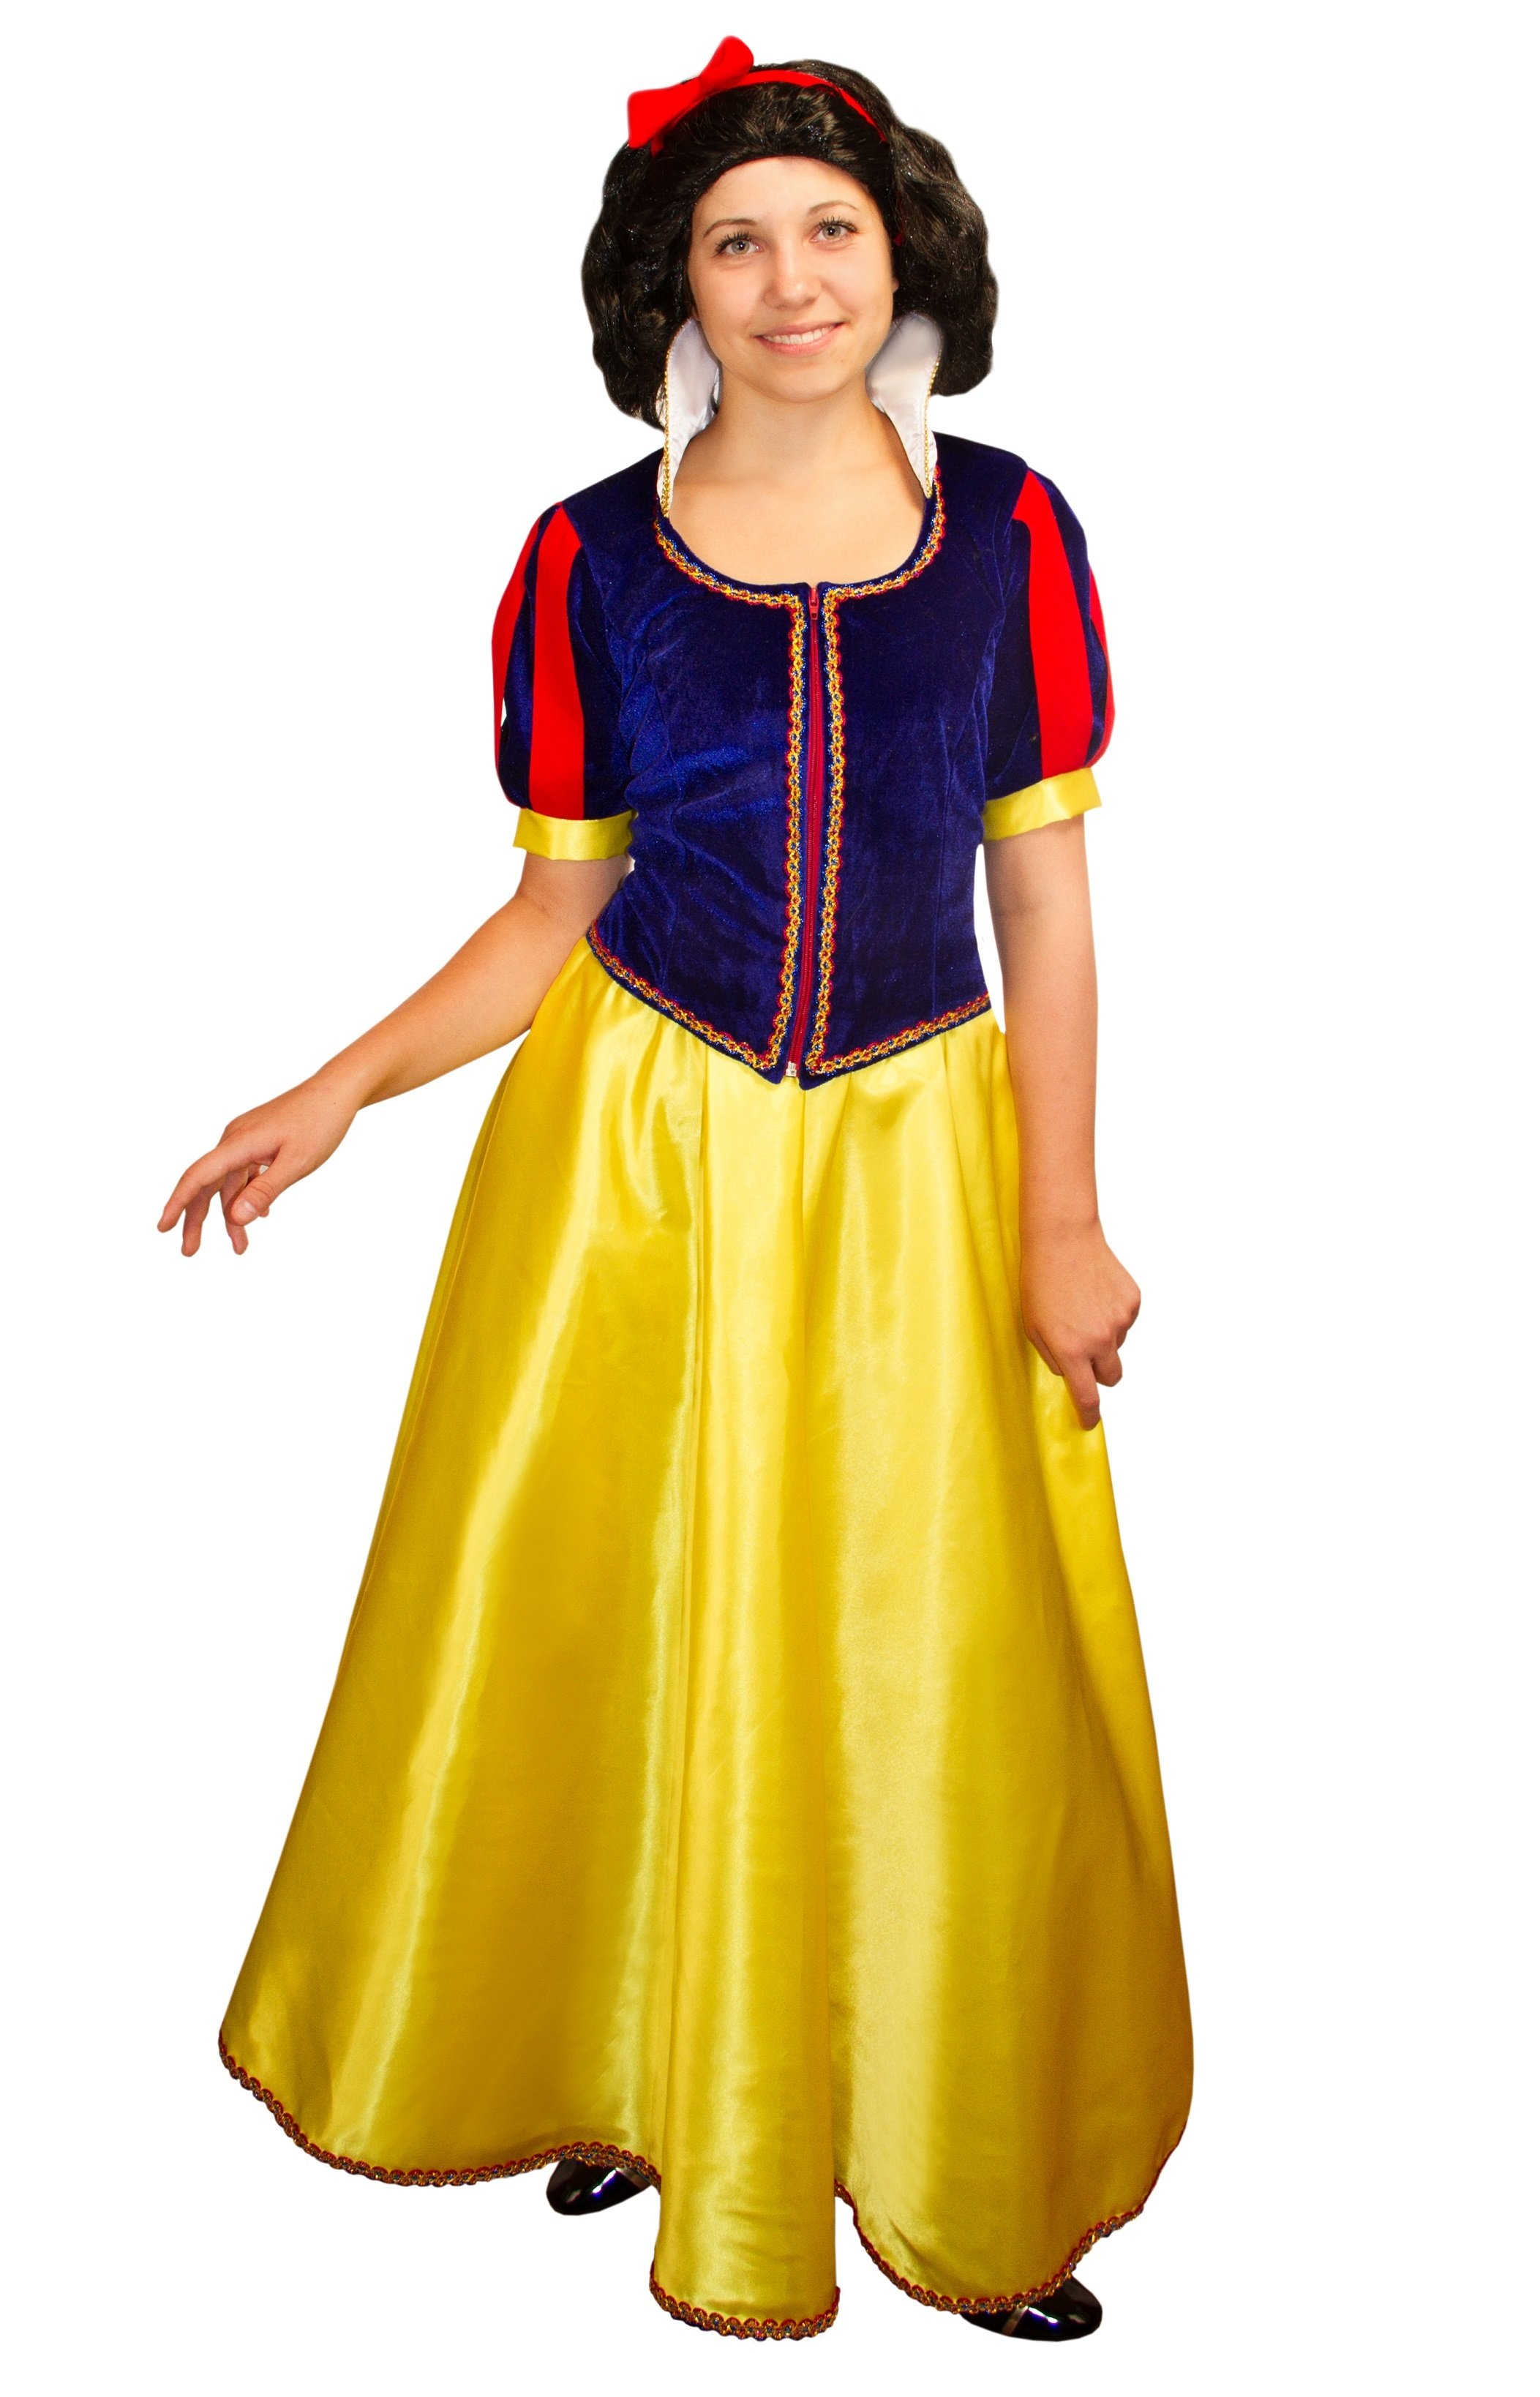 Snow White is the titular character and protagonist of Disneys first animated featurelength film Snow White and the Seven Dwarfs She is a young princess the